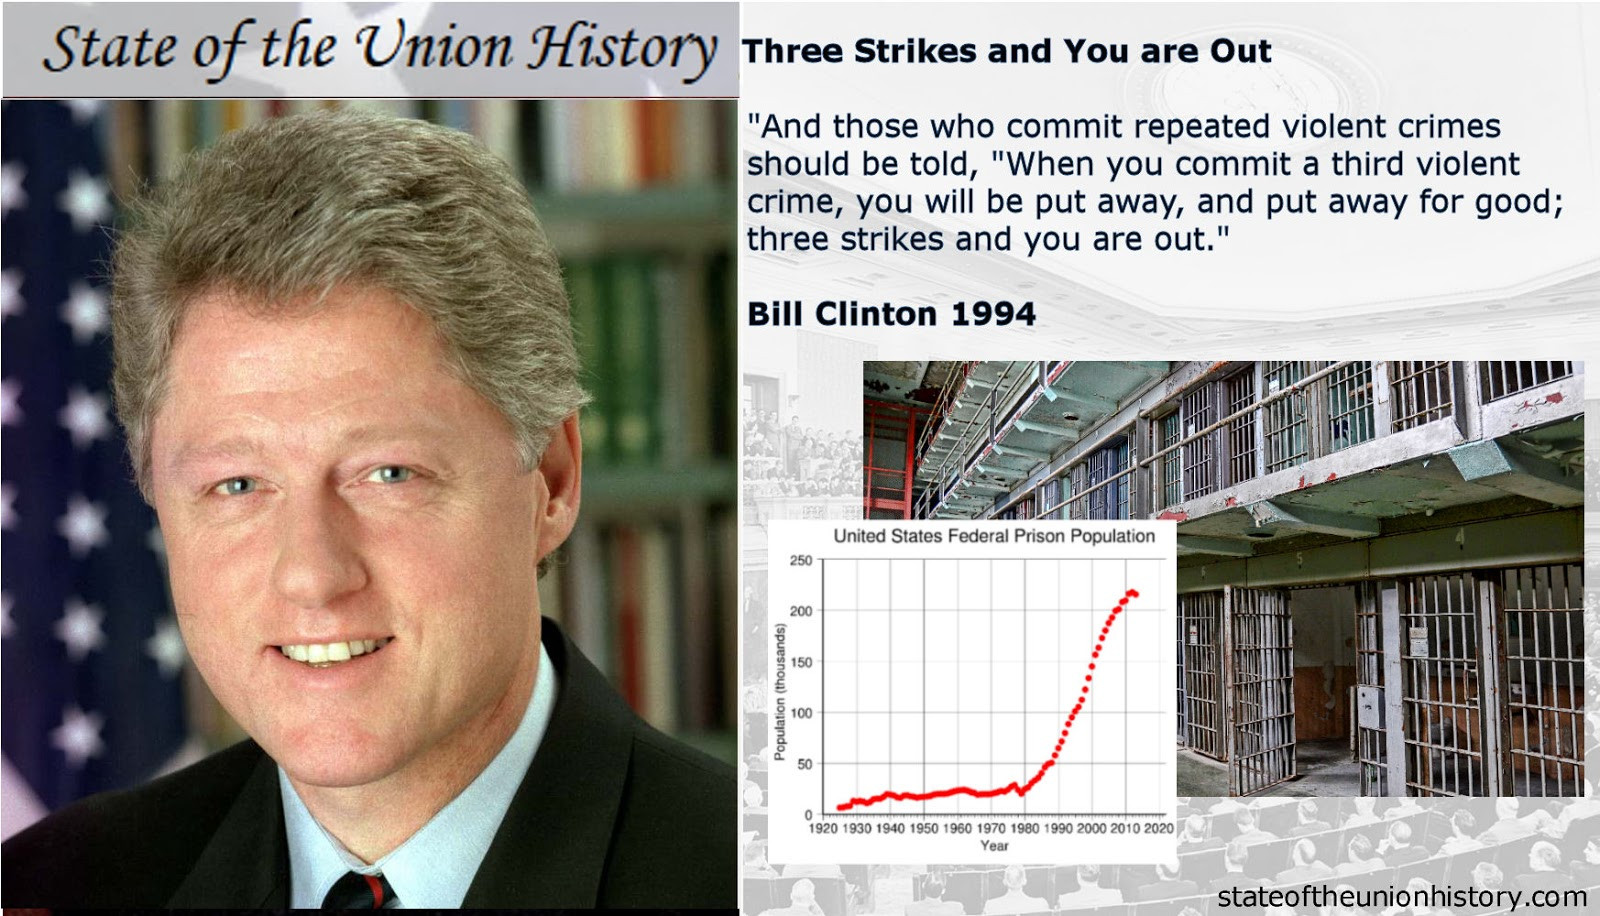 As president, Bill Clinton was an advocate for the Three Strikes Law